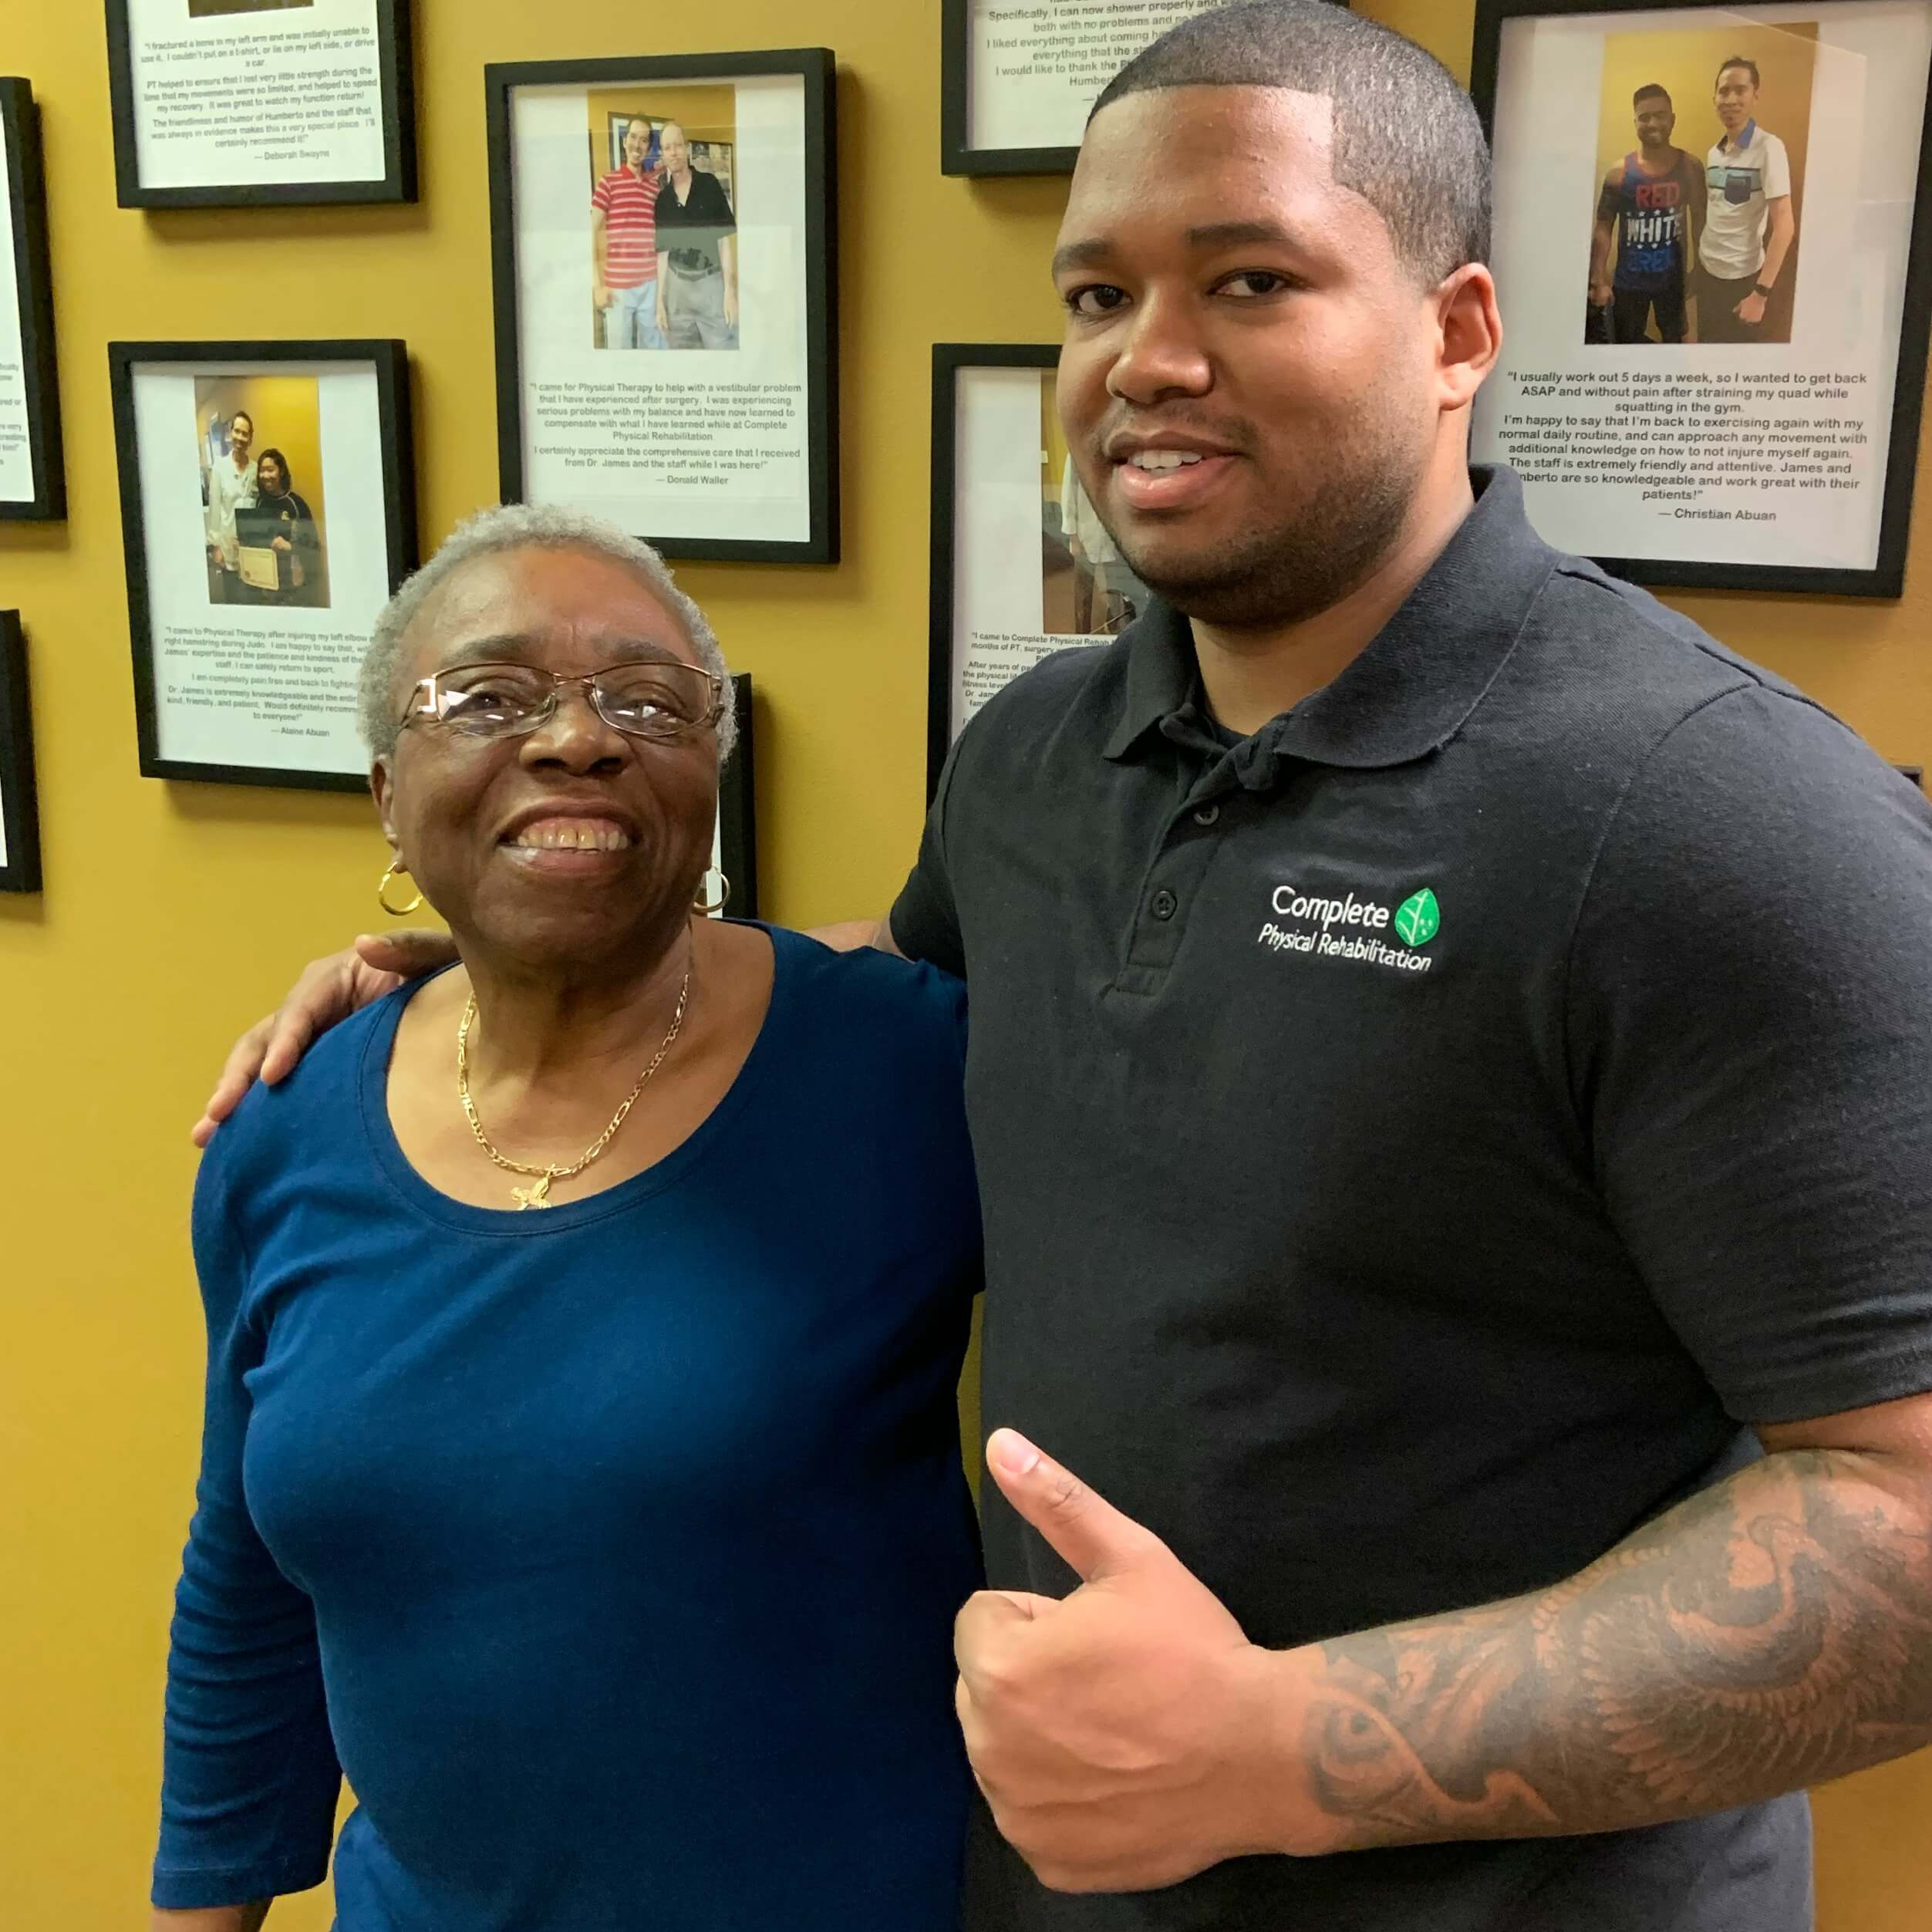 physical therapy specialist in jersey city dr. stefan paul with a happy complete physical rehabilitation patient